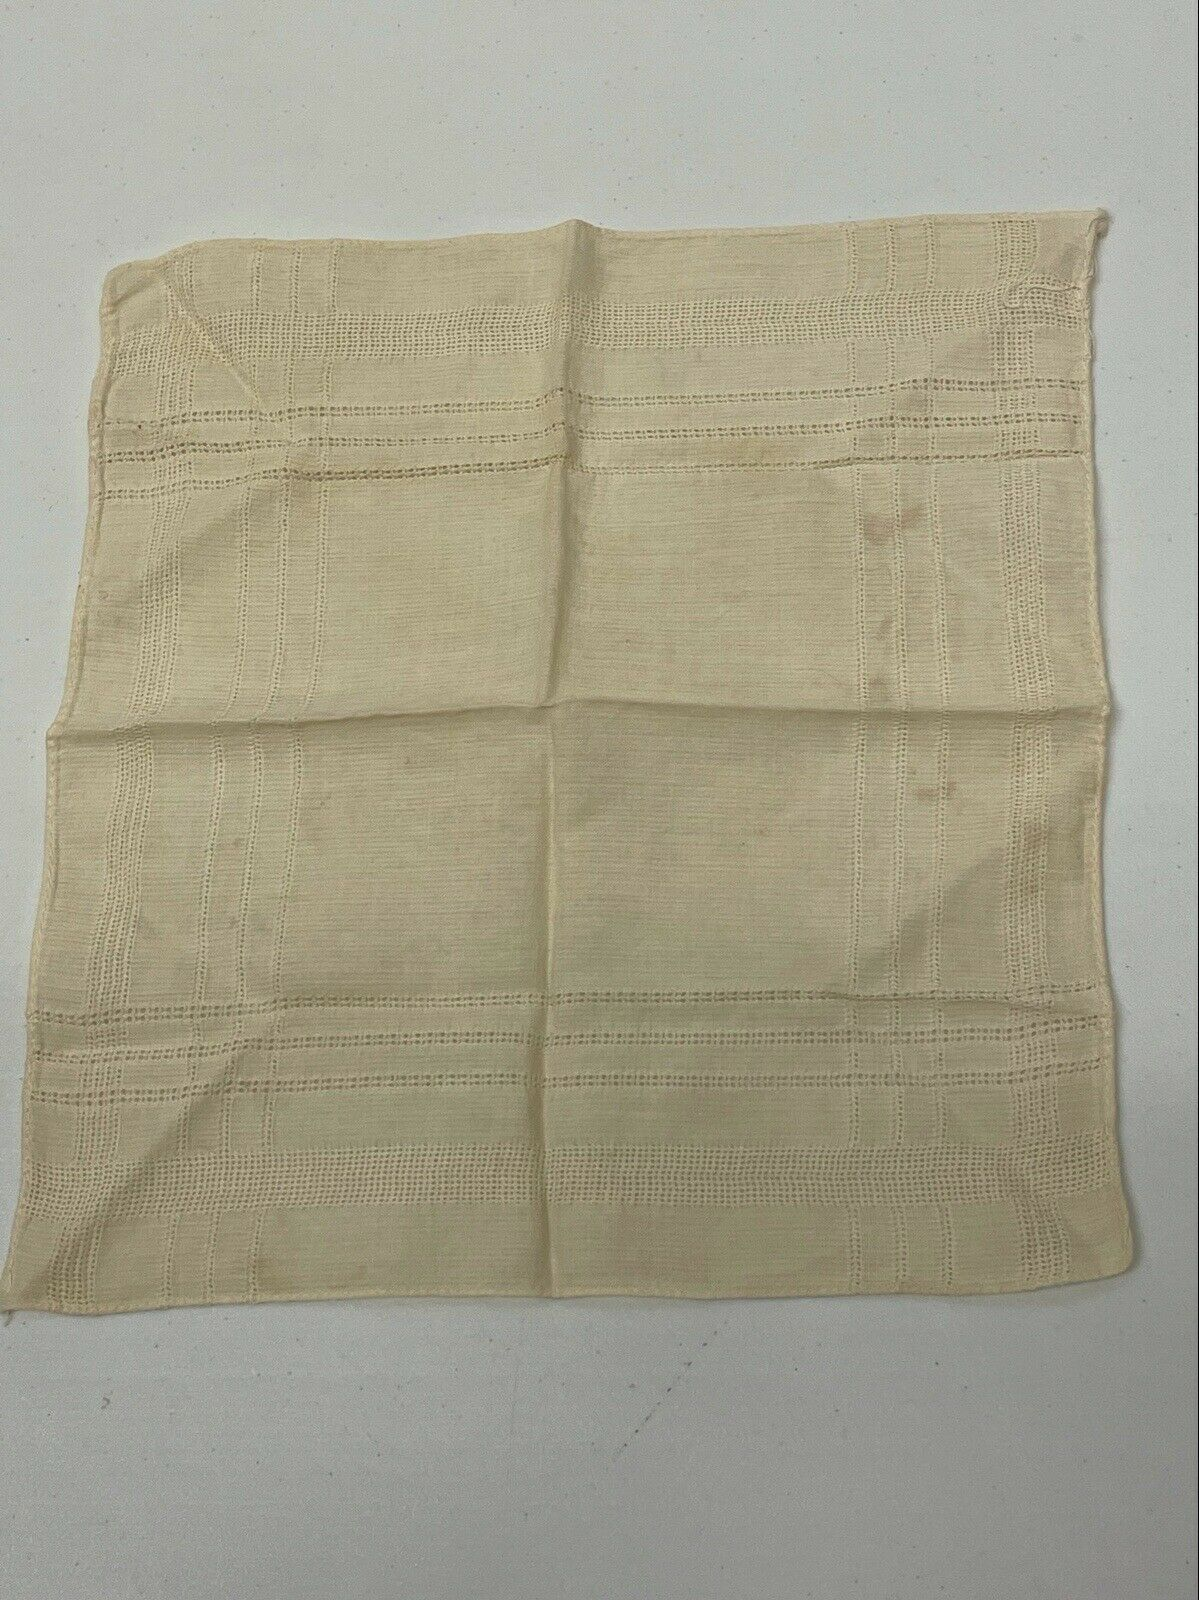 Vintage Off-White Colored Handkerchief A0660